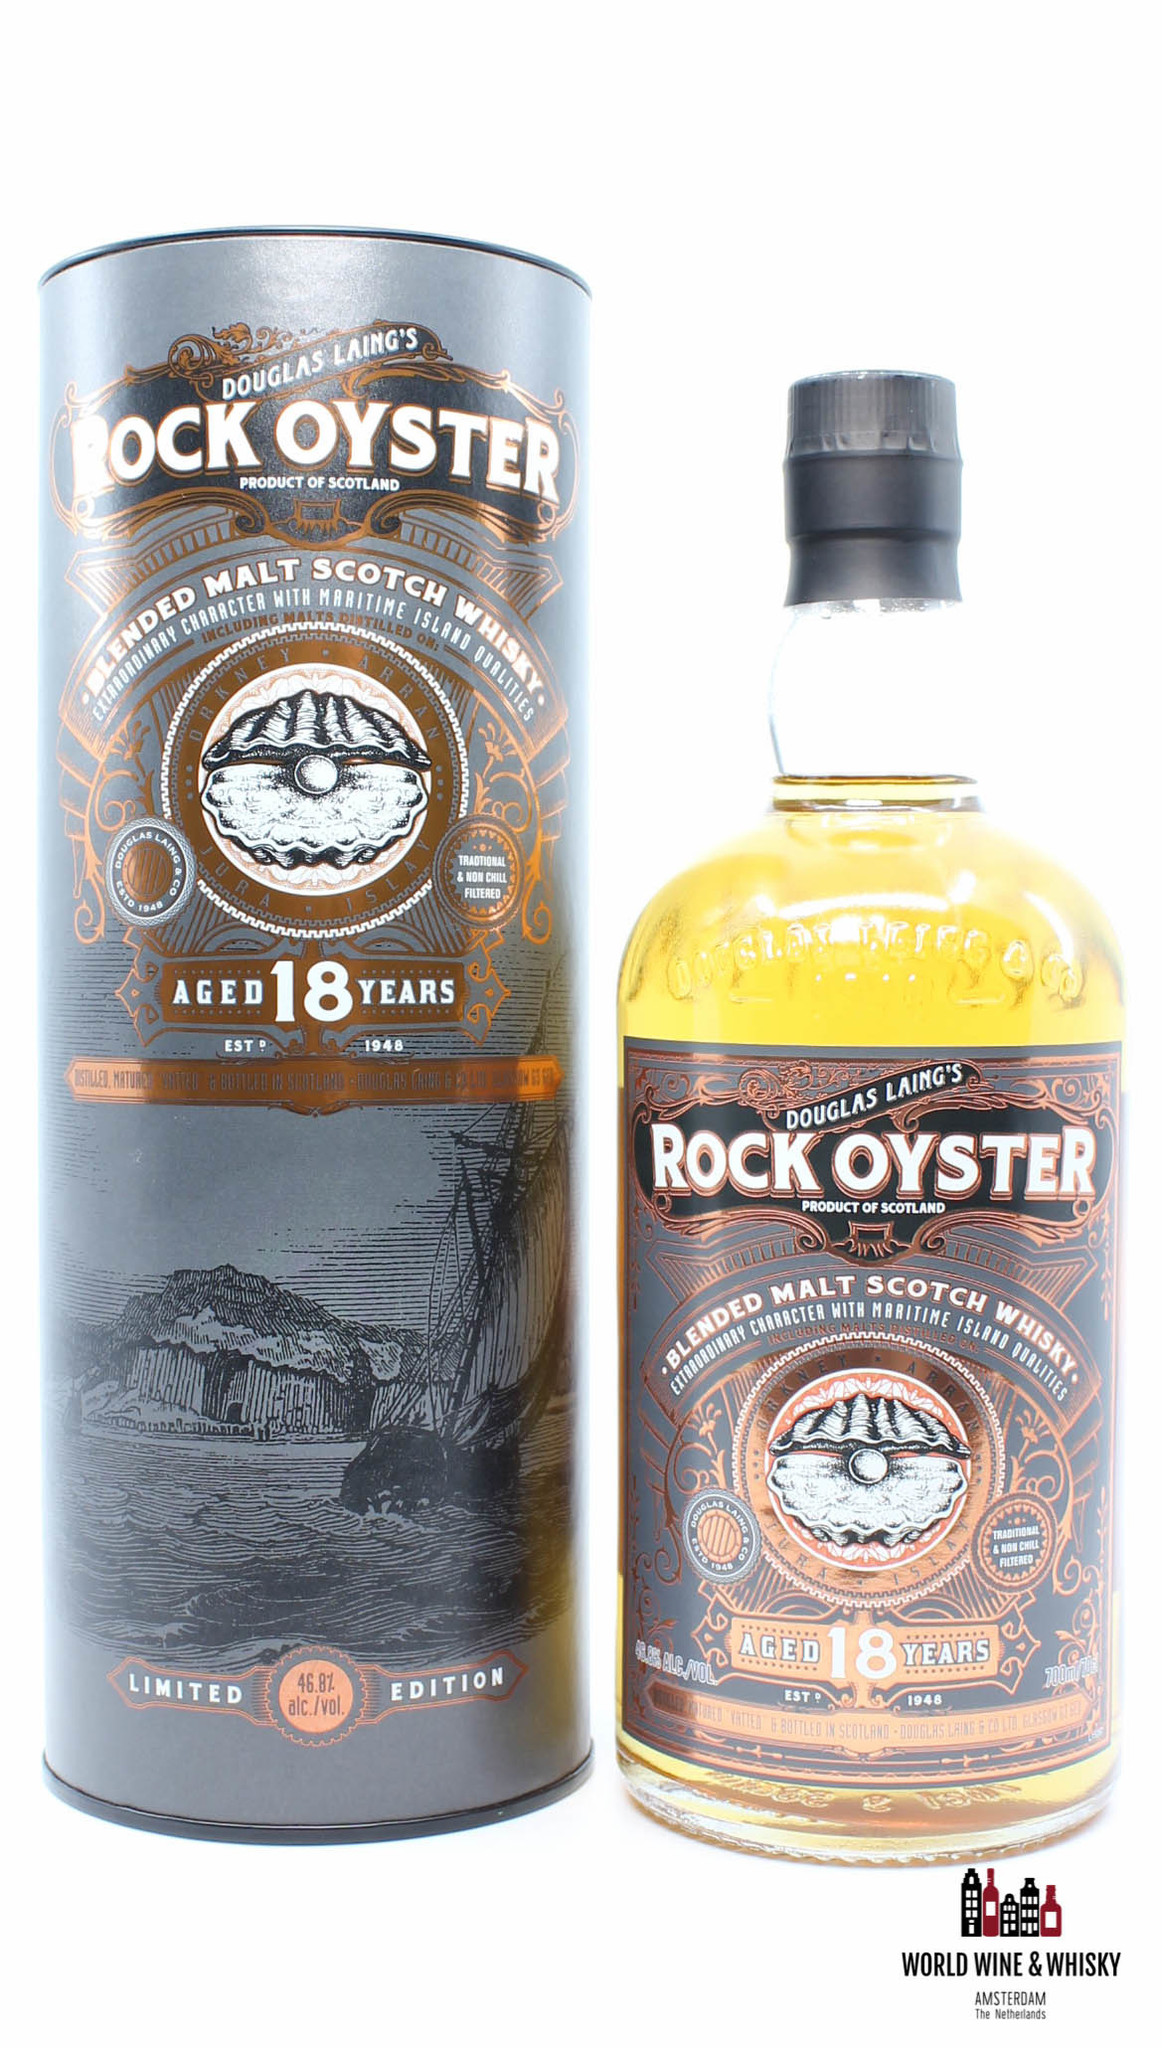 Douglas Laing Rock Oyster 18 Years Old 2017 - Douglas Laing - Limited Edition - Remarkable Regional Malts 46.8%